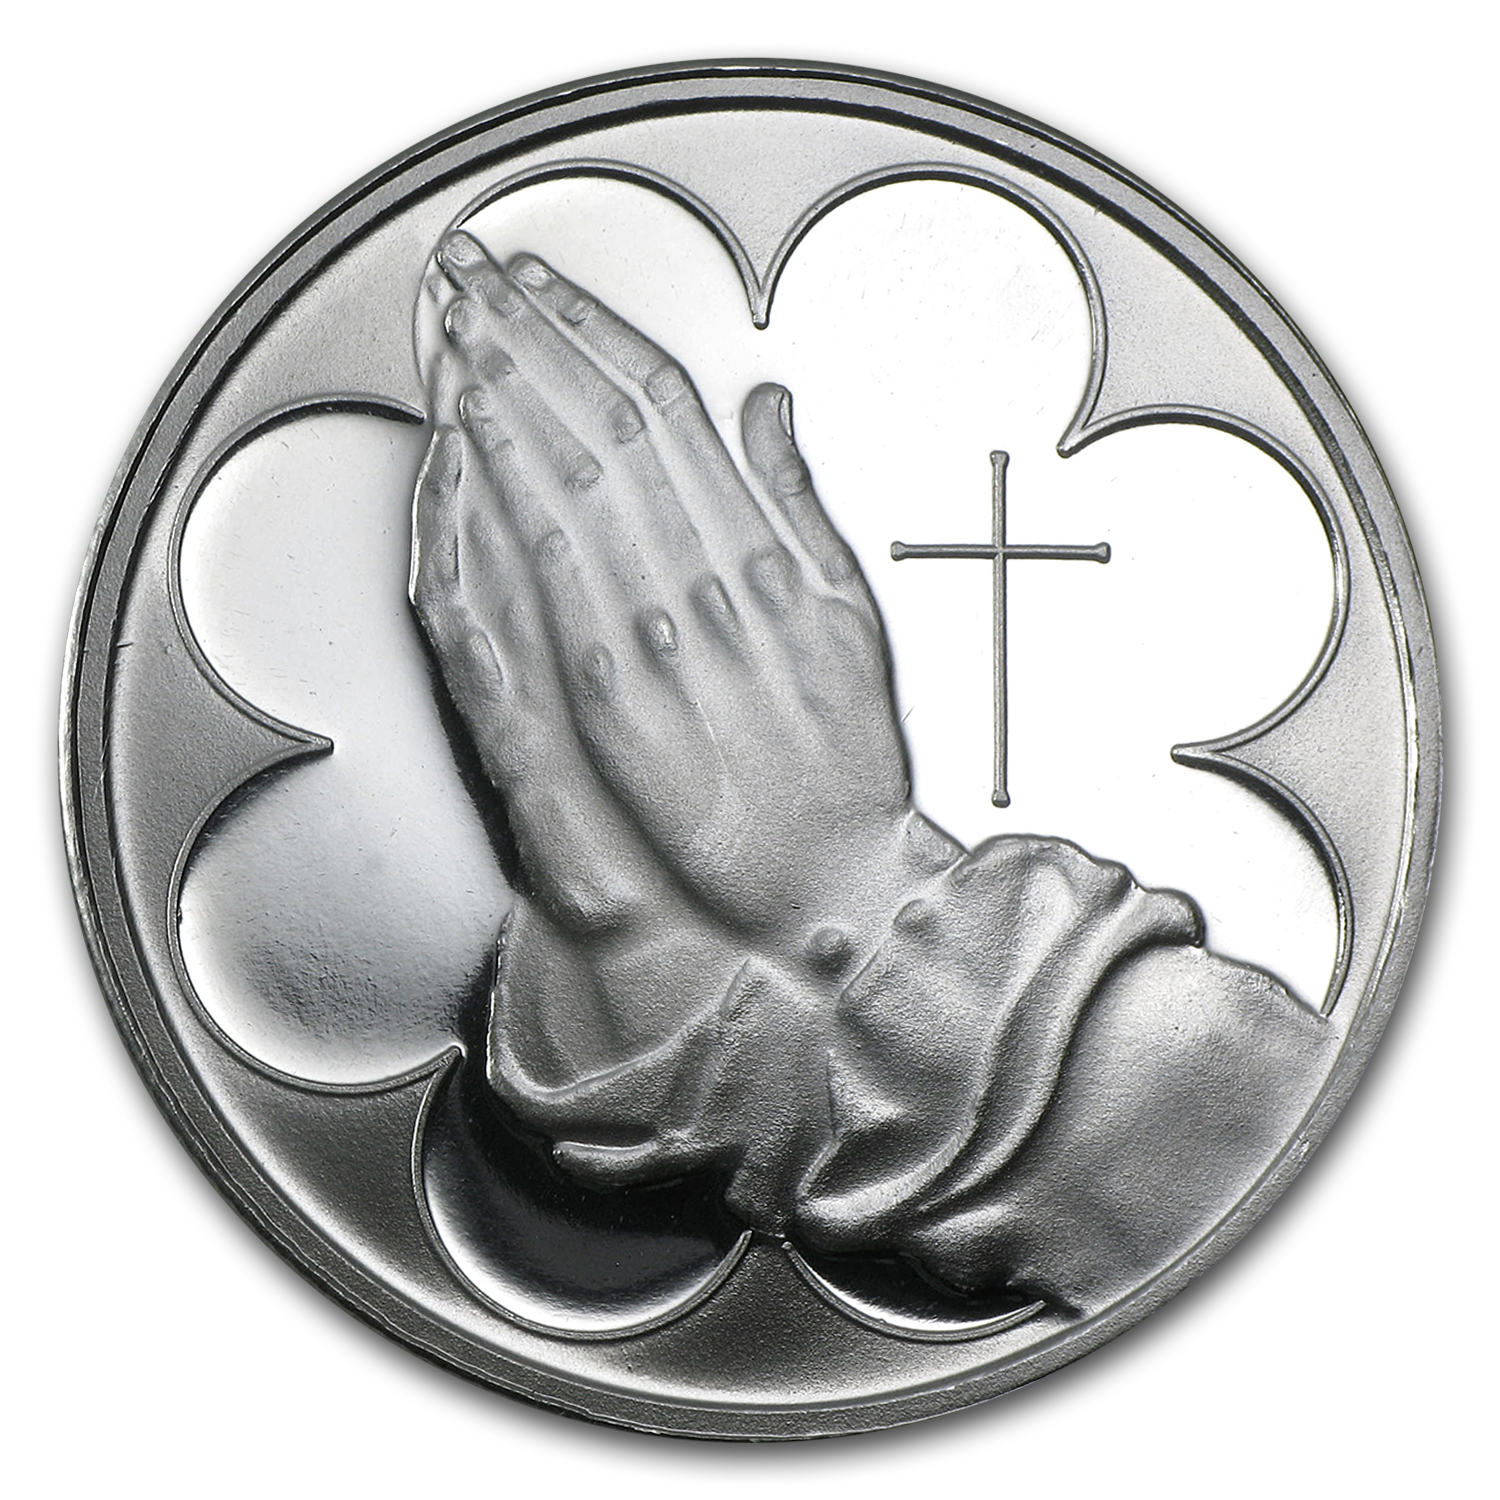 1 oz Silver Round - Praying Hands